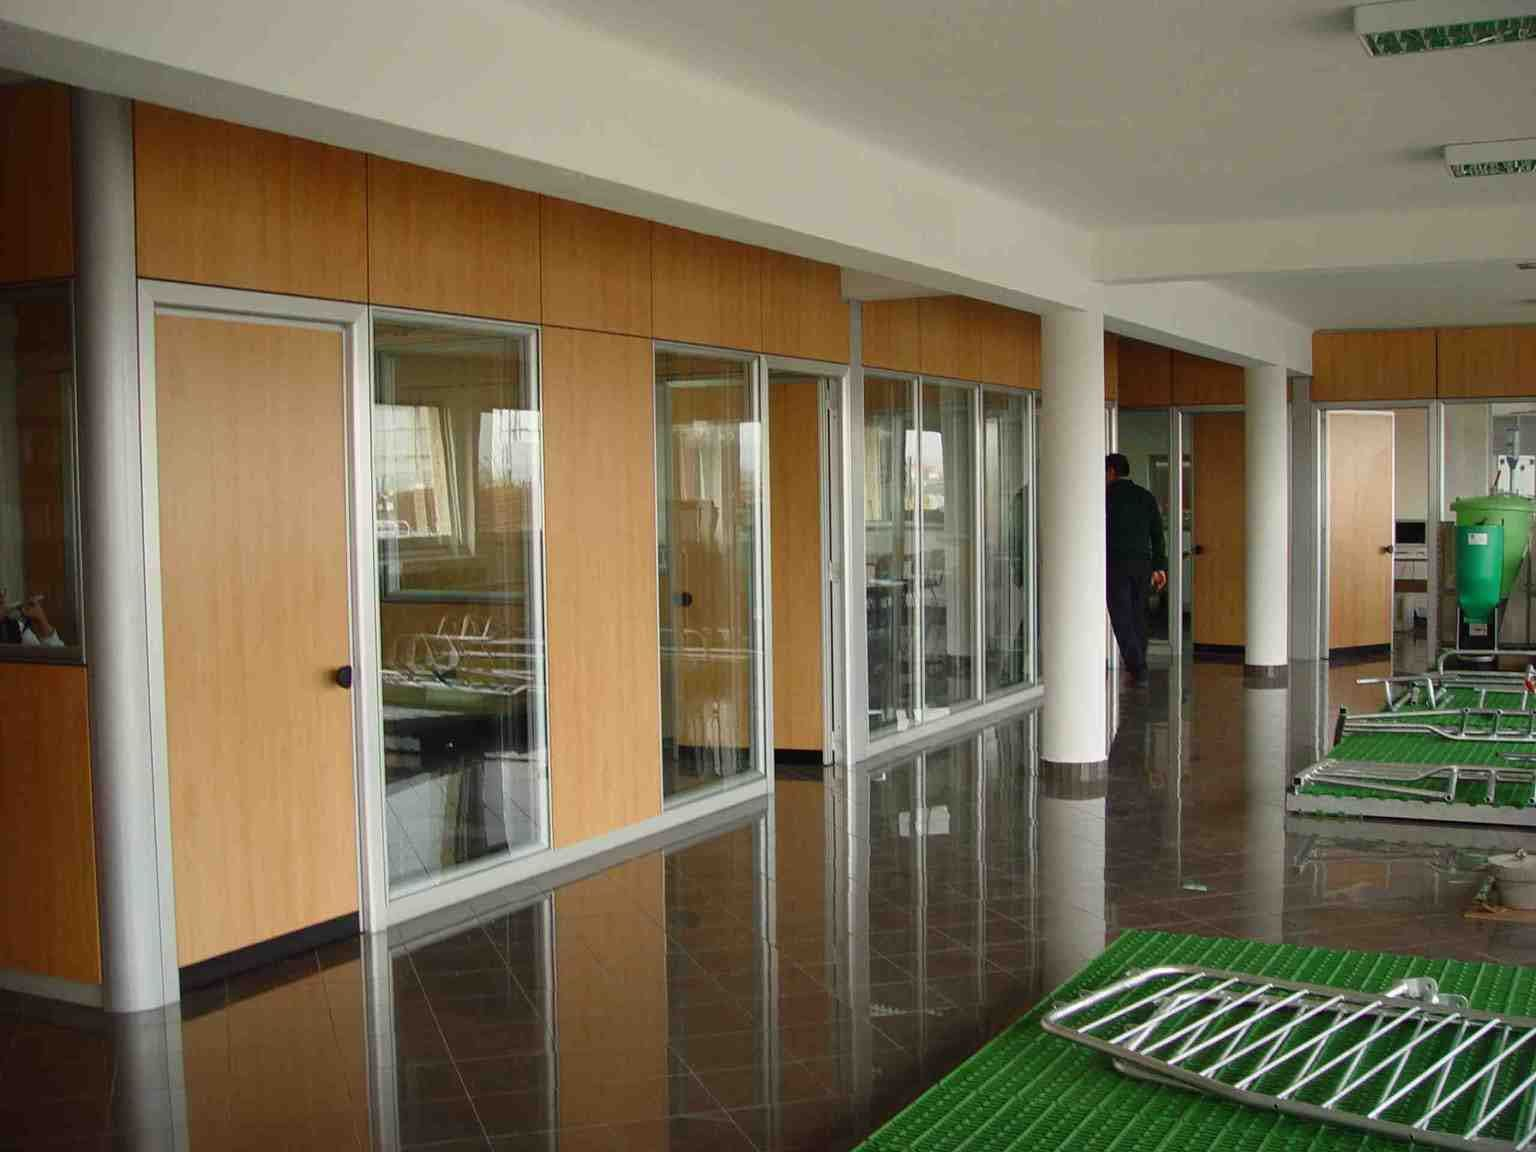 Wood Partition Walls Office Divider Walls Transparent Glass And Solid Wood Office Room